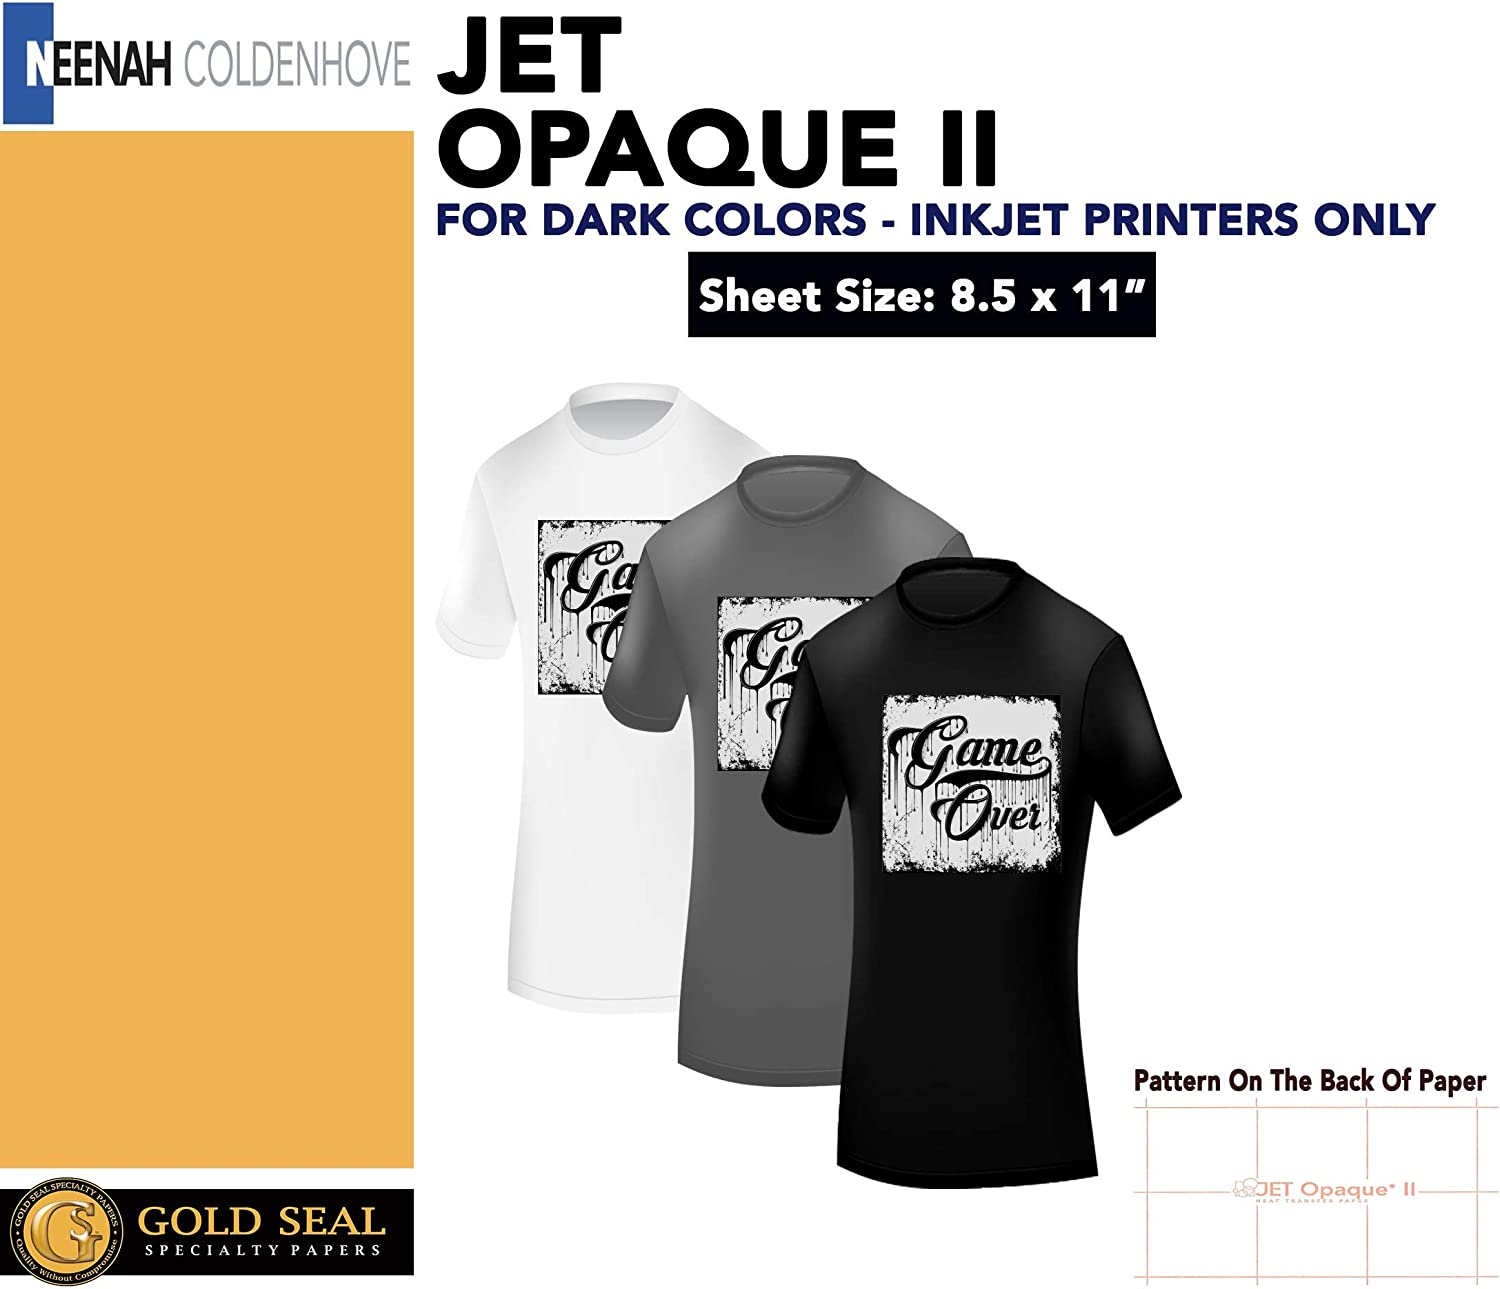 "JET-OPAQUE II HEAT TRANSFER PAPER 8.5 X 11"" CUSTOM PACK 50 SHEETS world-paper"